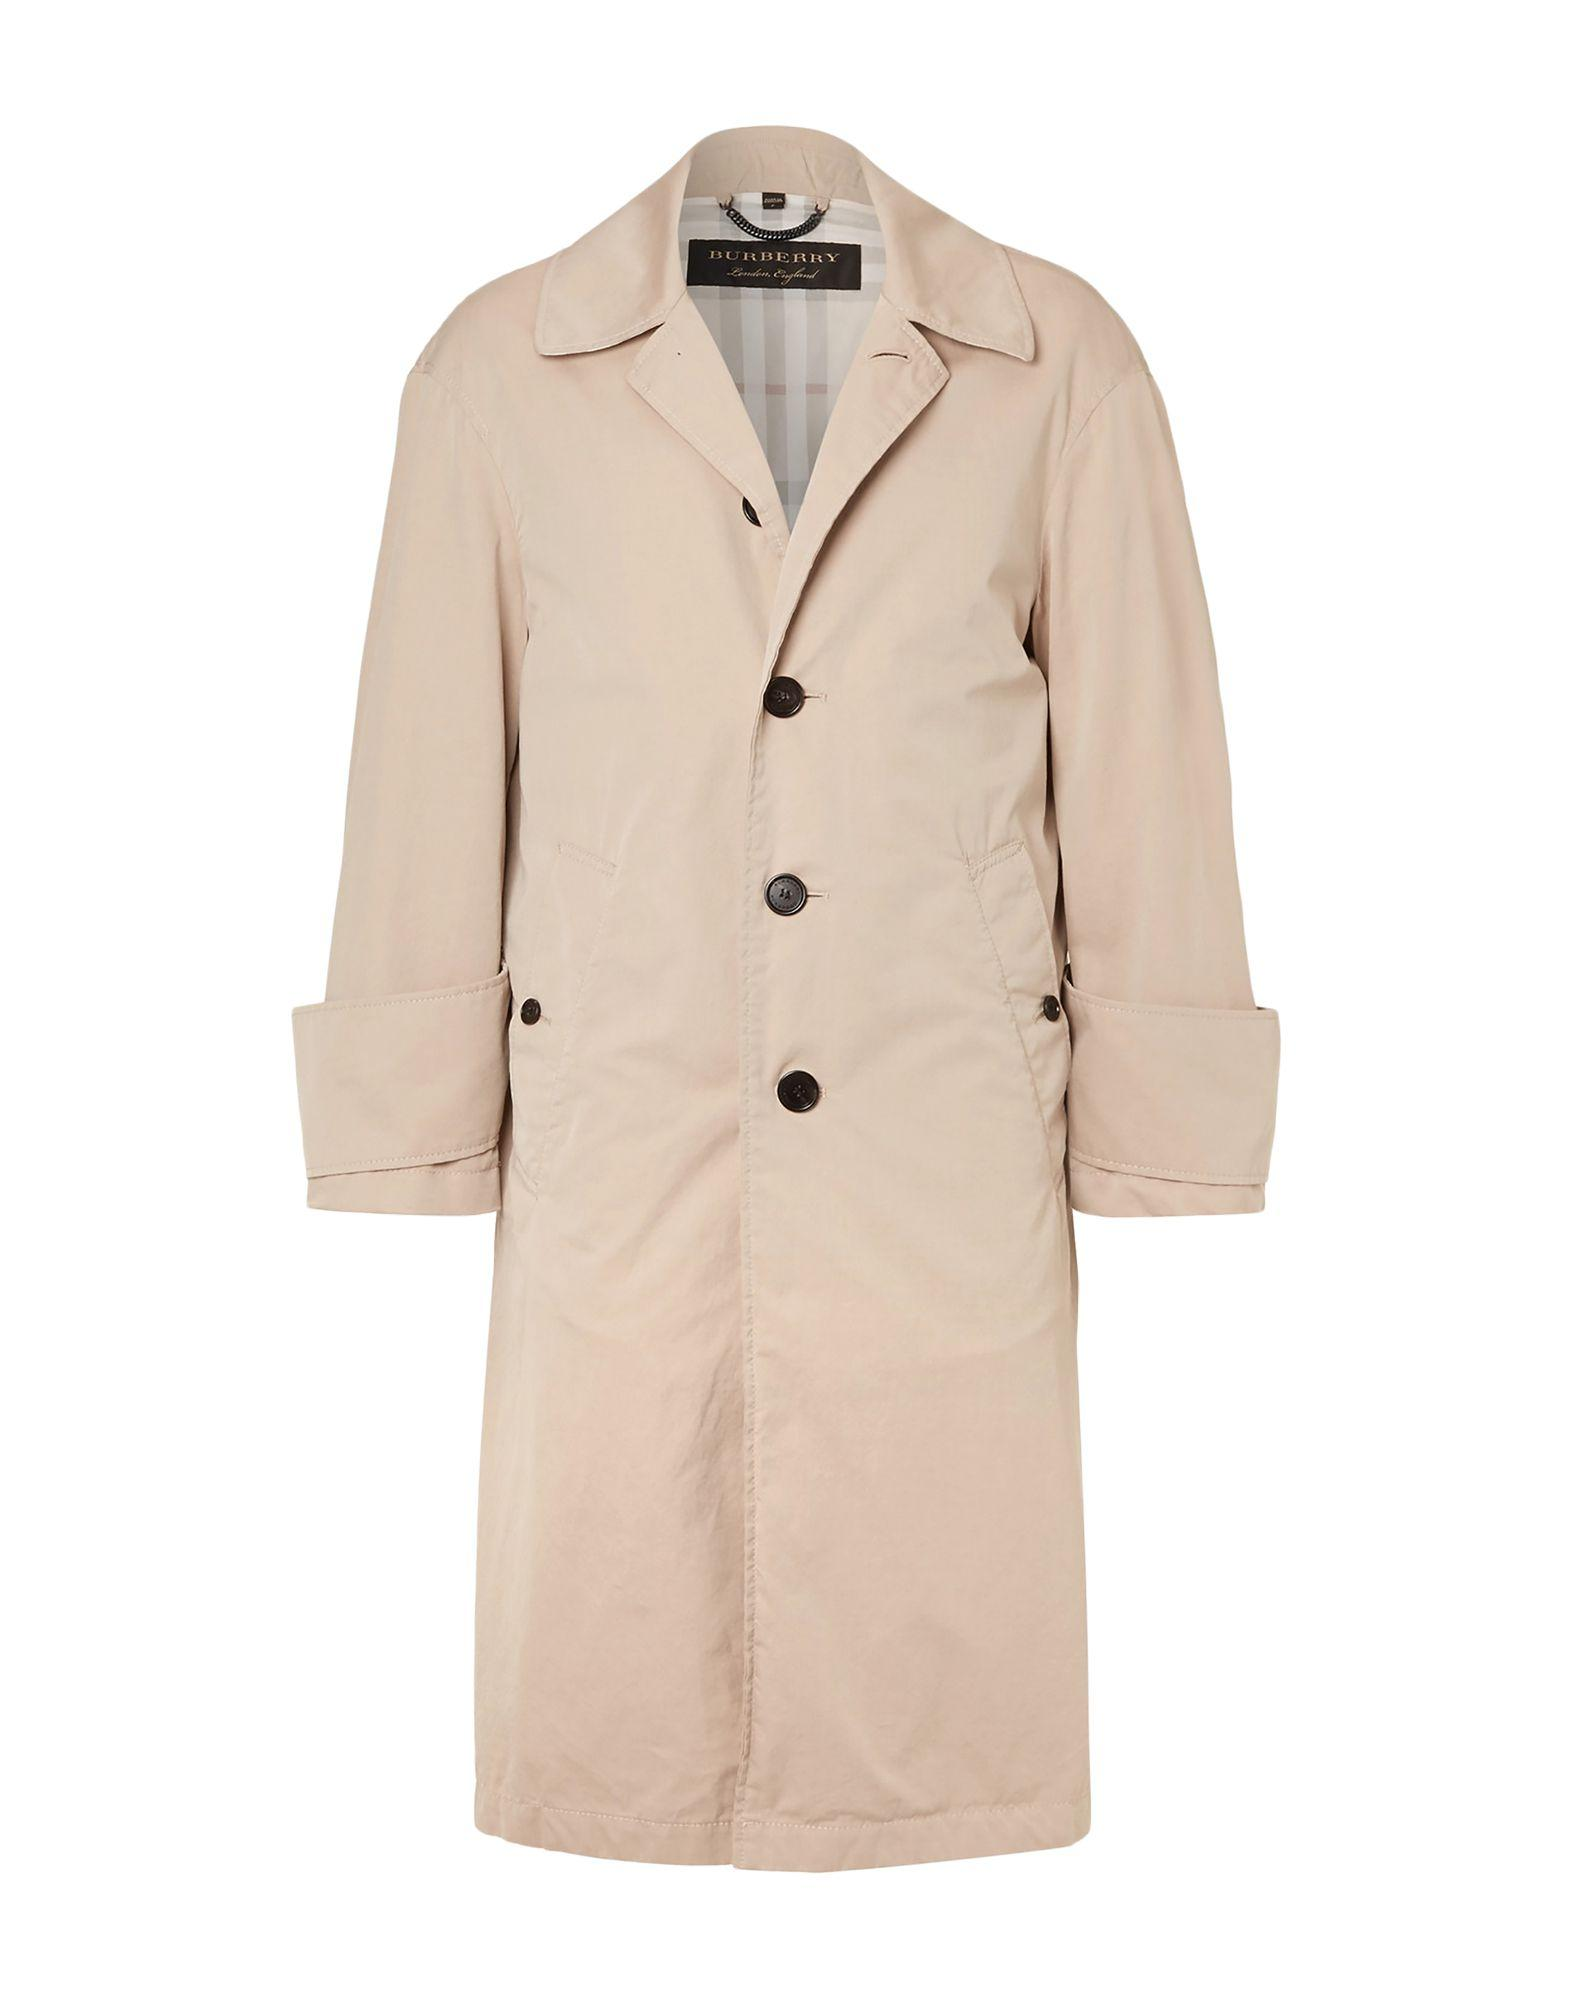 049325ad35ef Lyst - Burberry Coat in Natural for Men